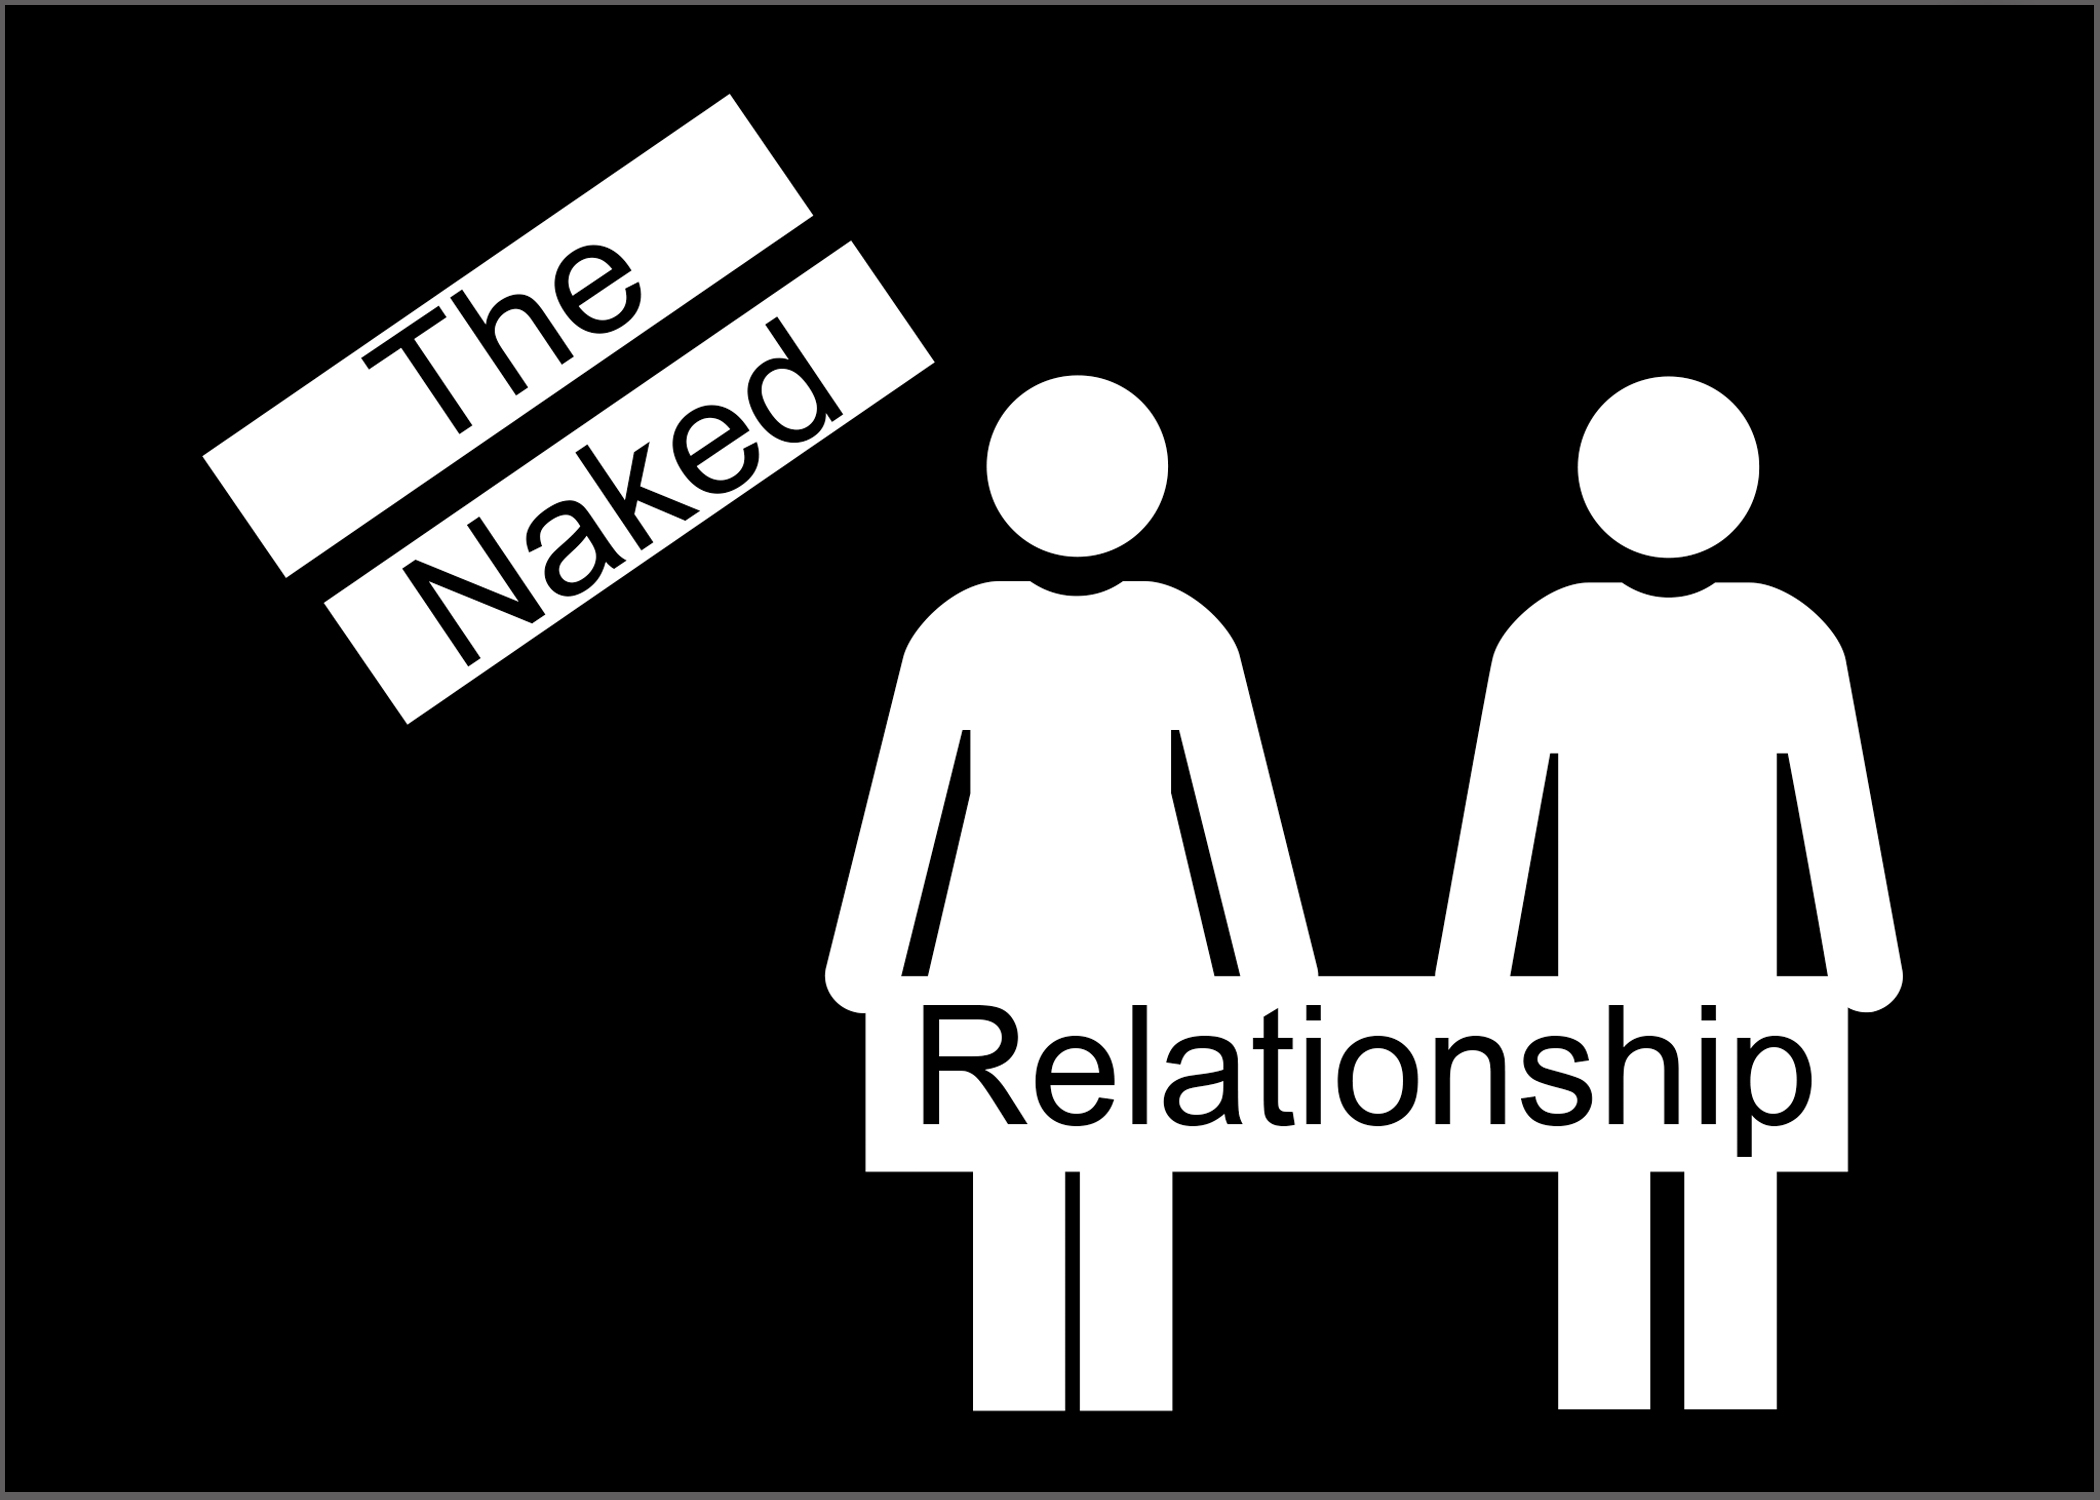 """The Naked Relationship 5"""" x 7"""" Window Sticker"""